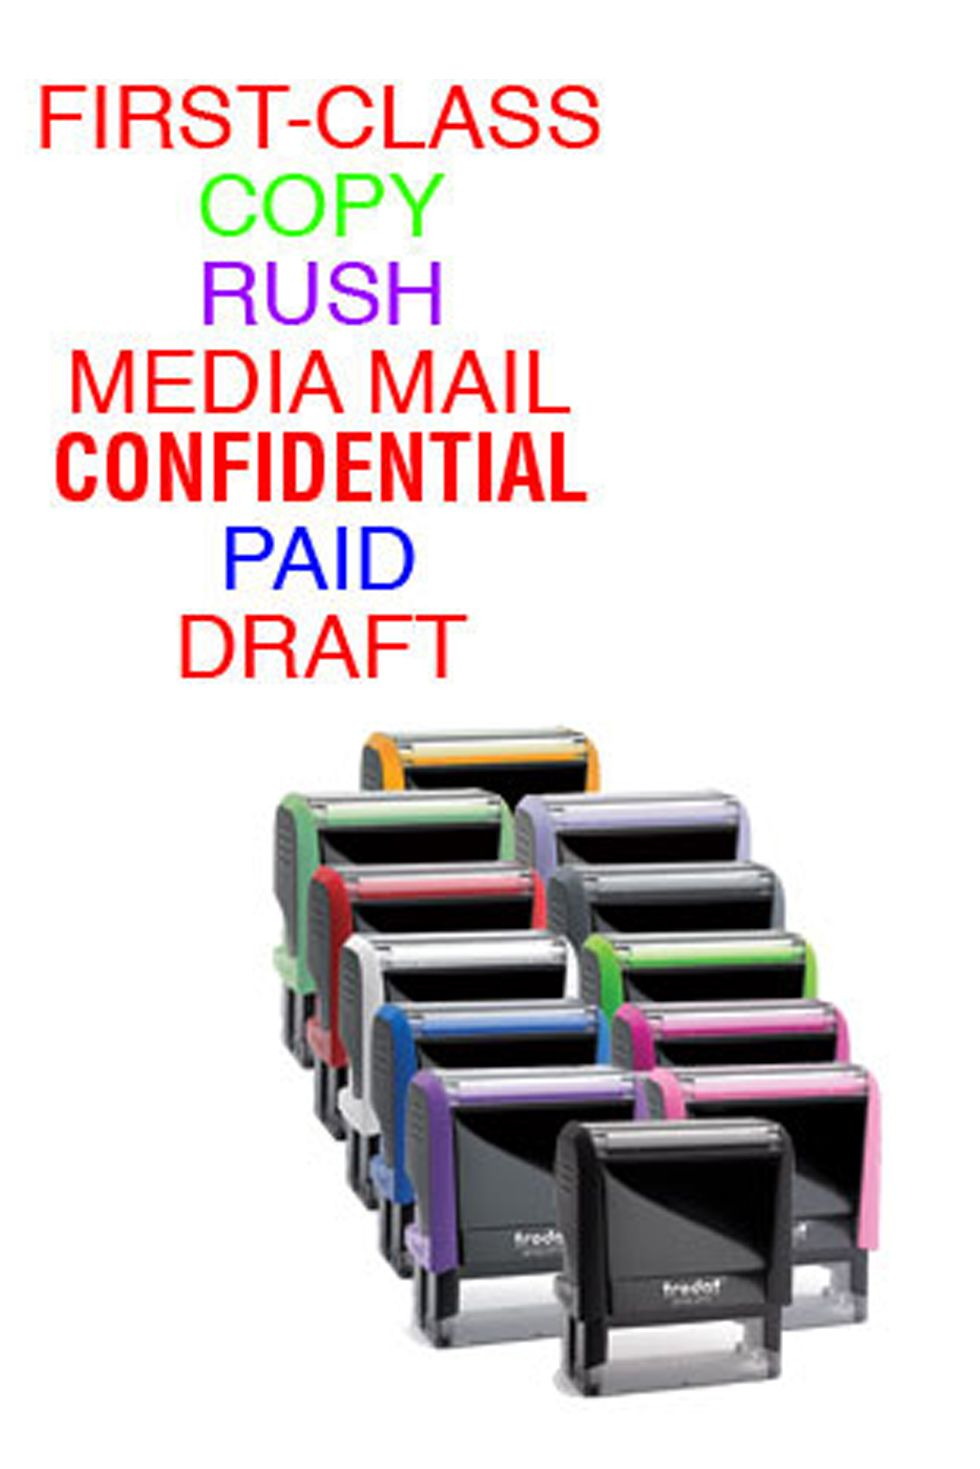 Office Stamps Make An Efficient Alternative To Writing Out The Same Notices Every Day Office Stamps Personalized Stamps Stamp Making